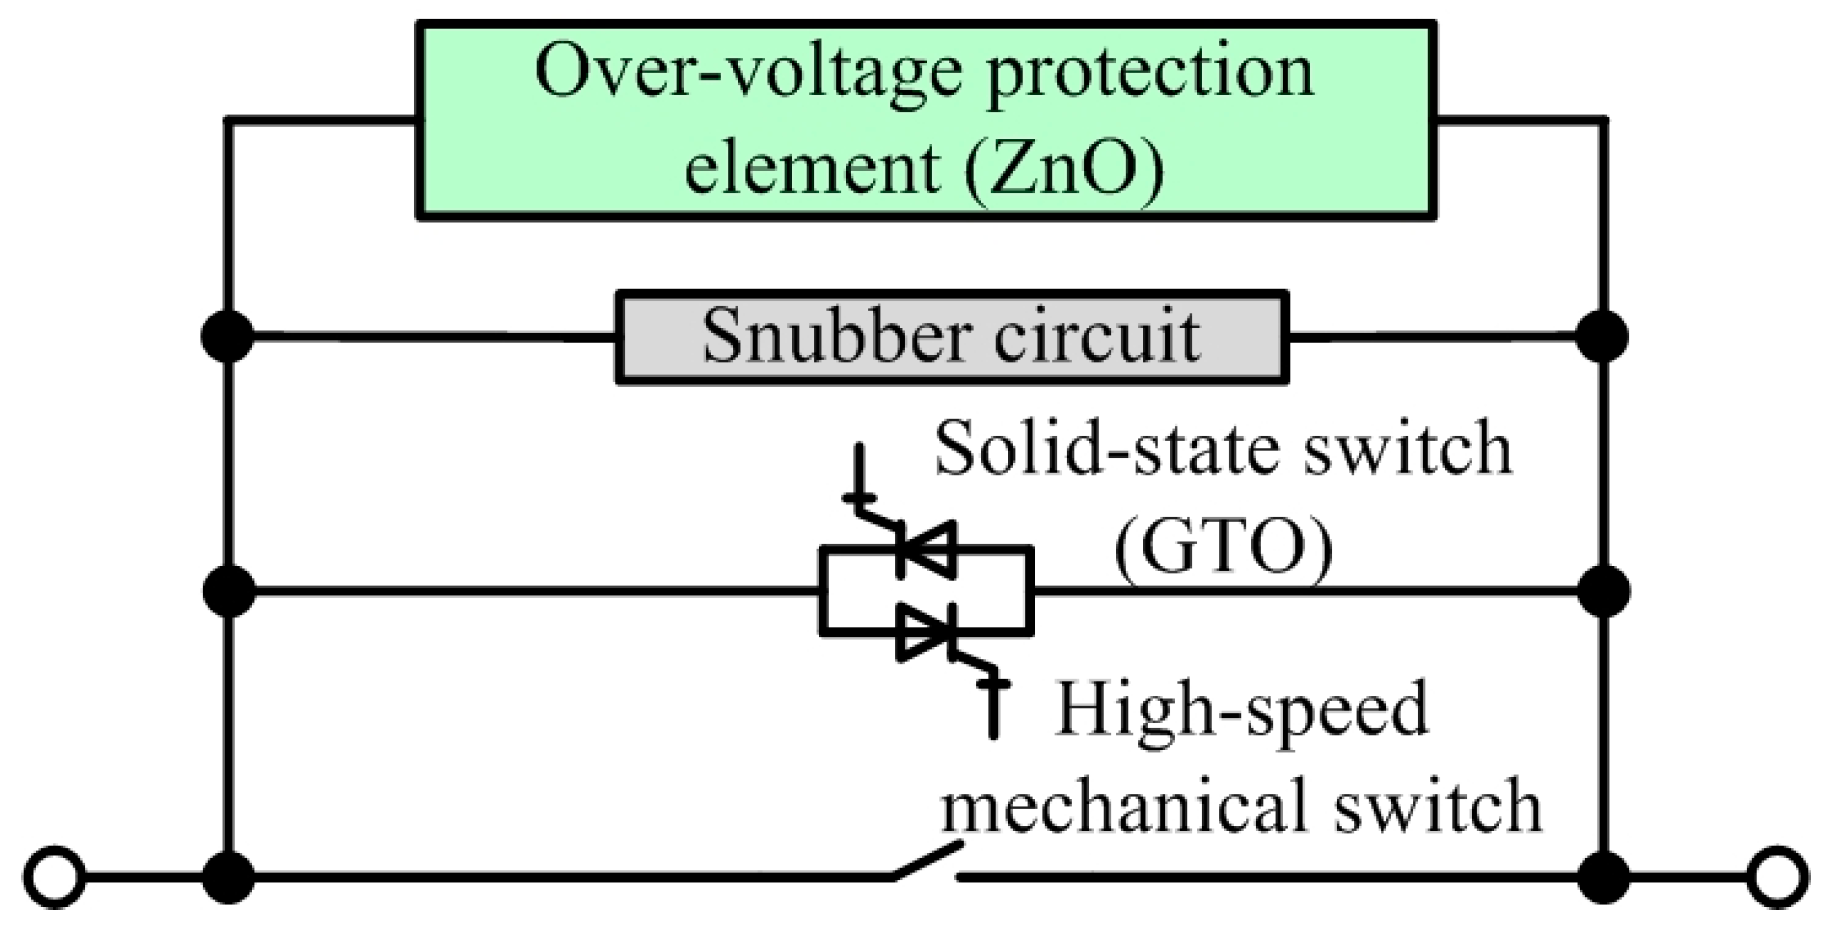 Energies Free Full Text Semiconductor Devices In Solid State Step 1 Turn Off Power At Circuit Breaker 10 00495 G001 Figure